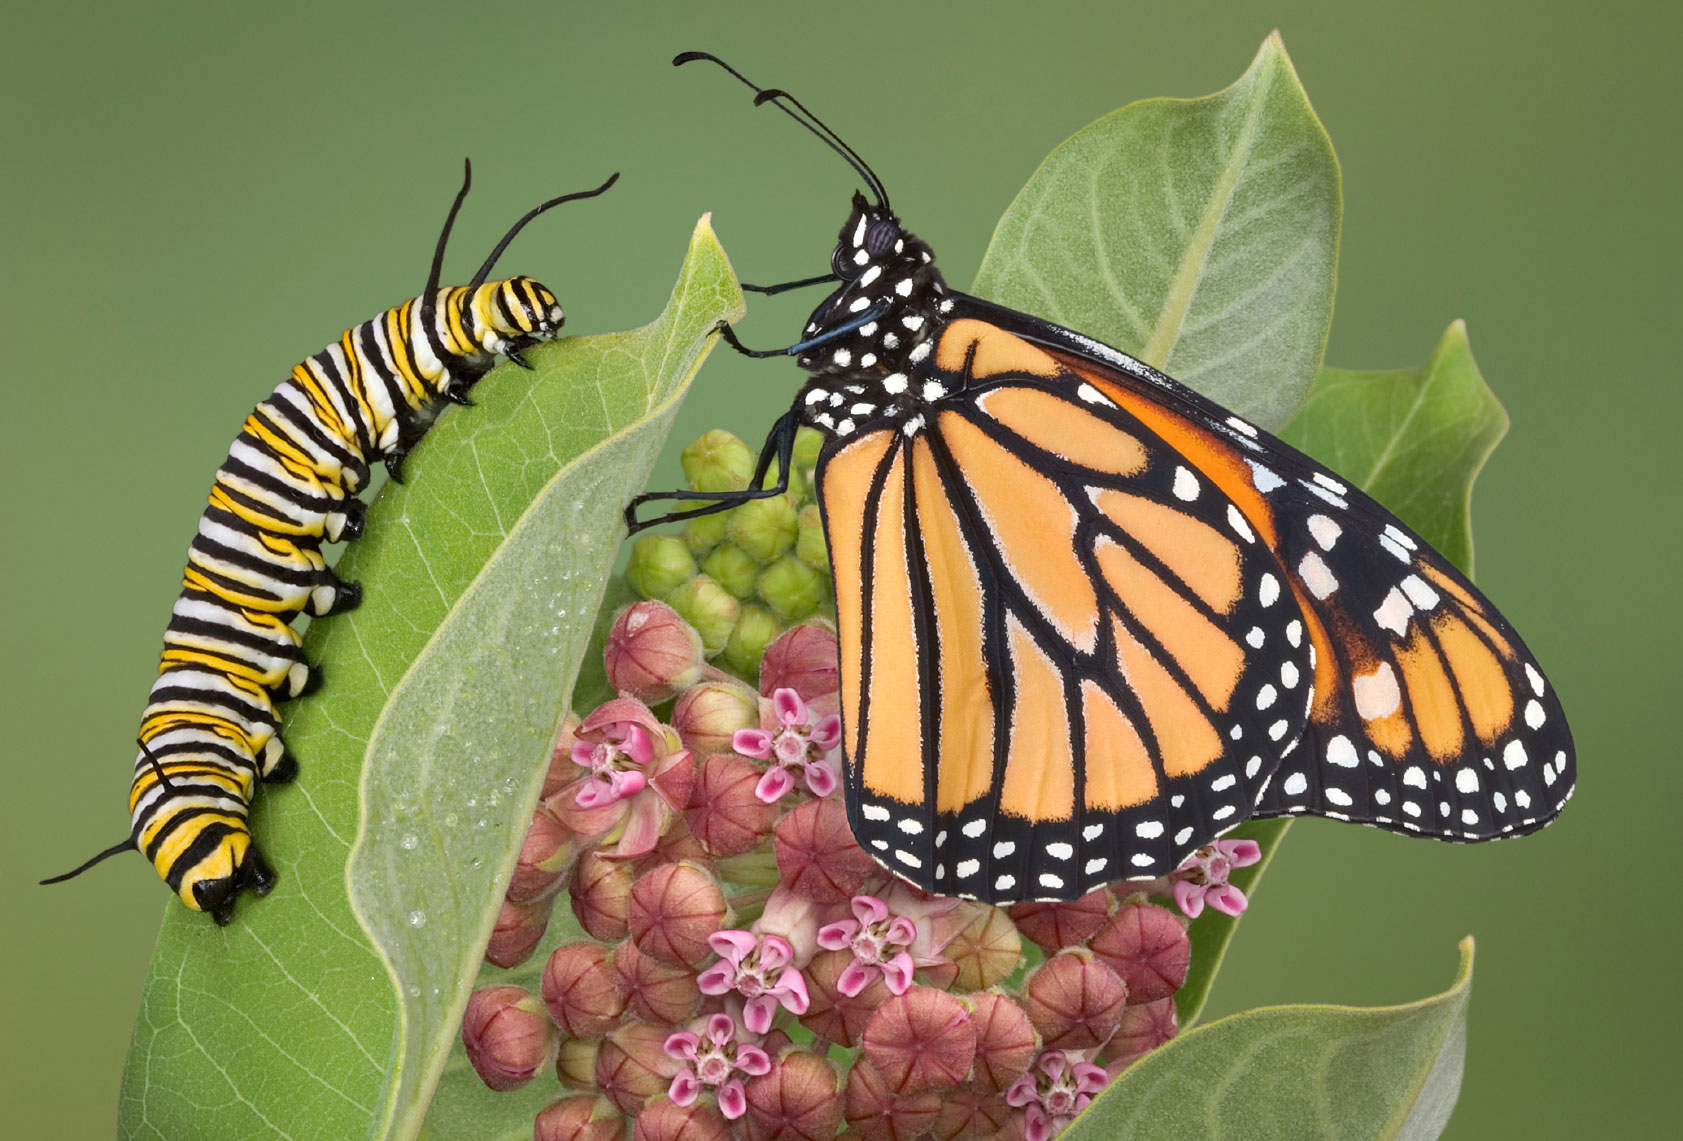 Can Growth Mindset Turn a Caterpillar into a Human Butterfly?